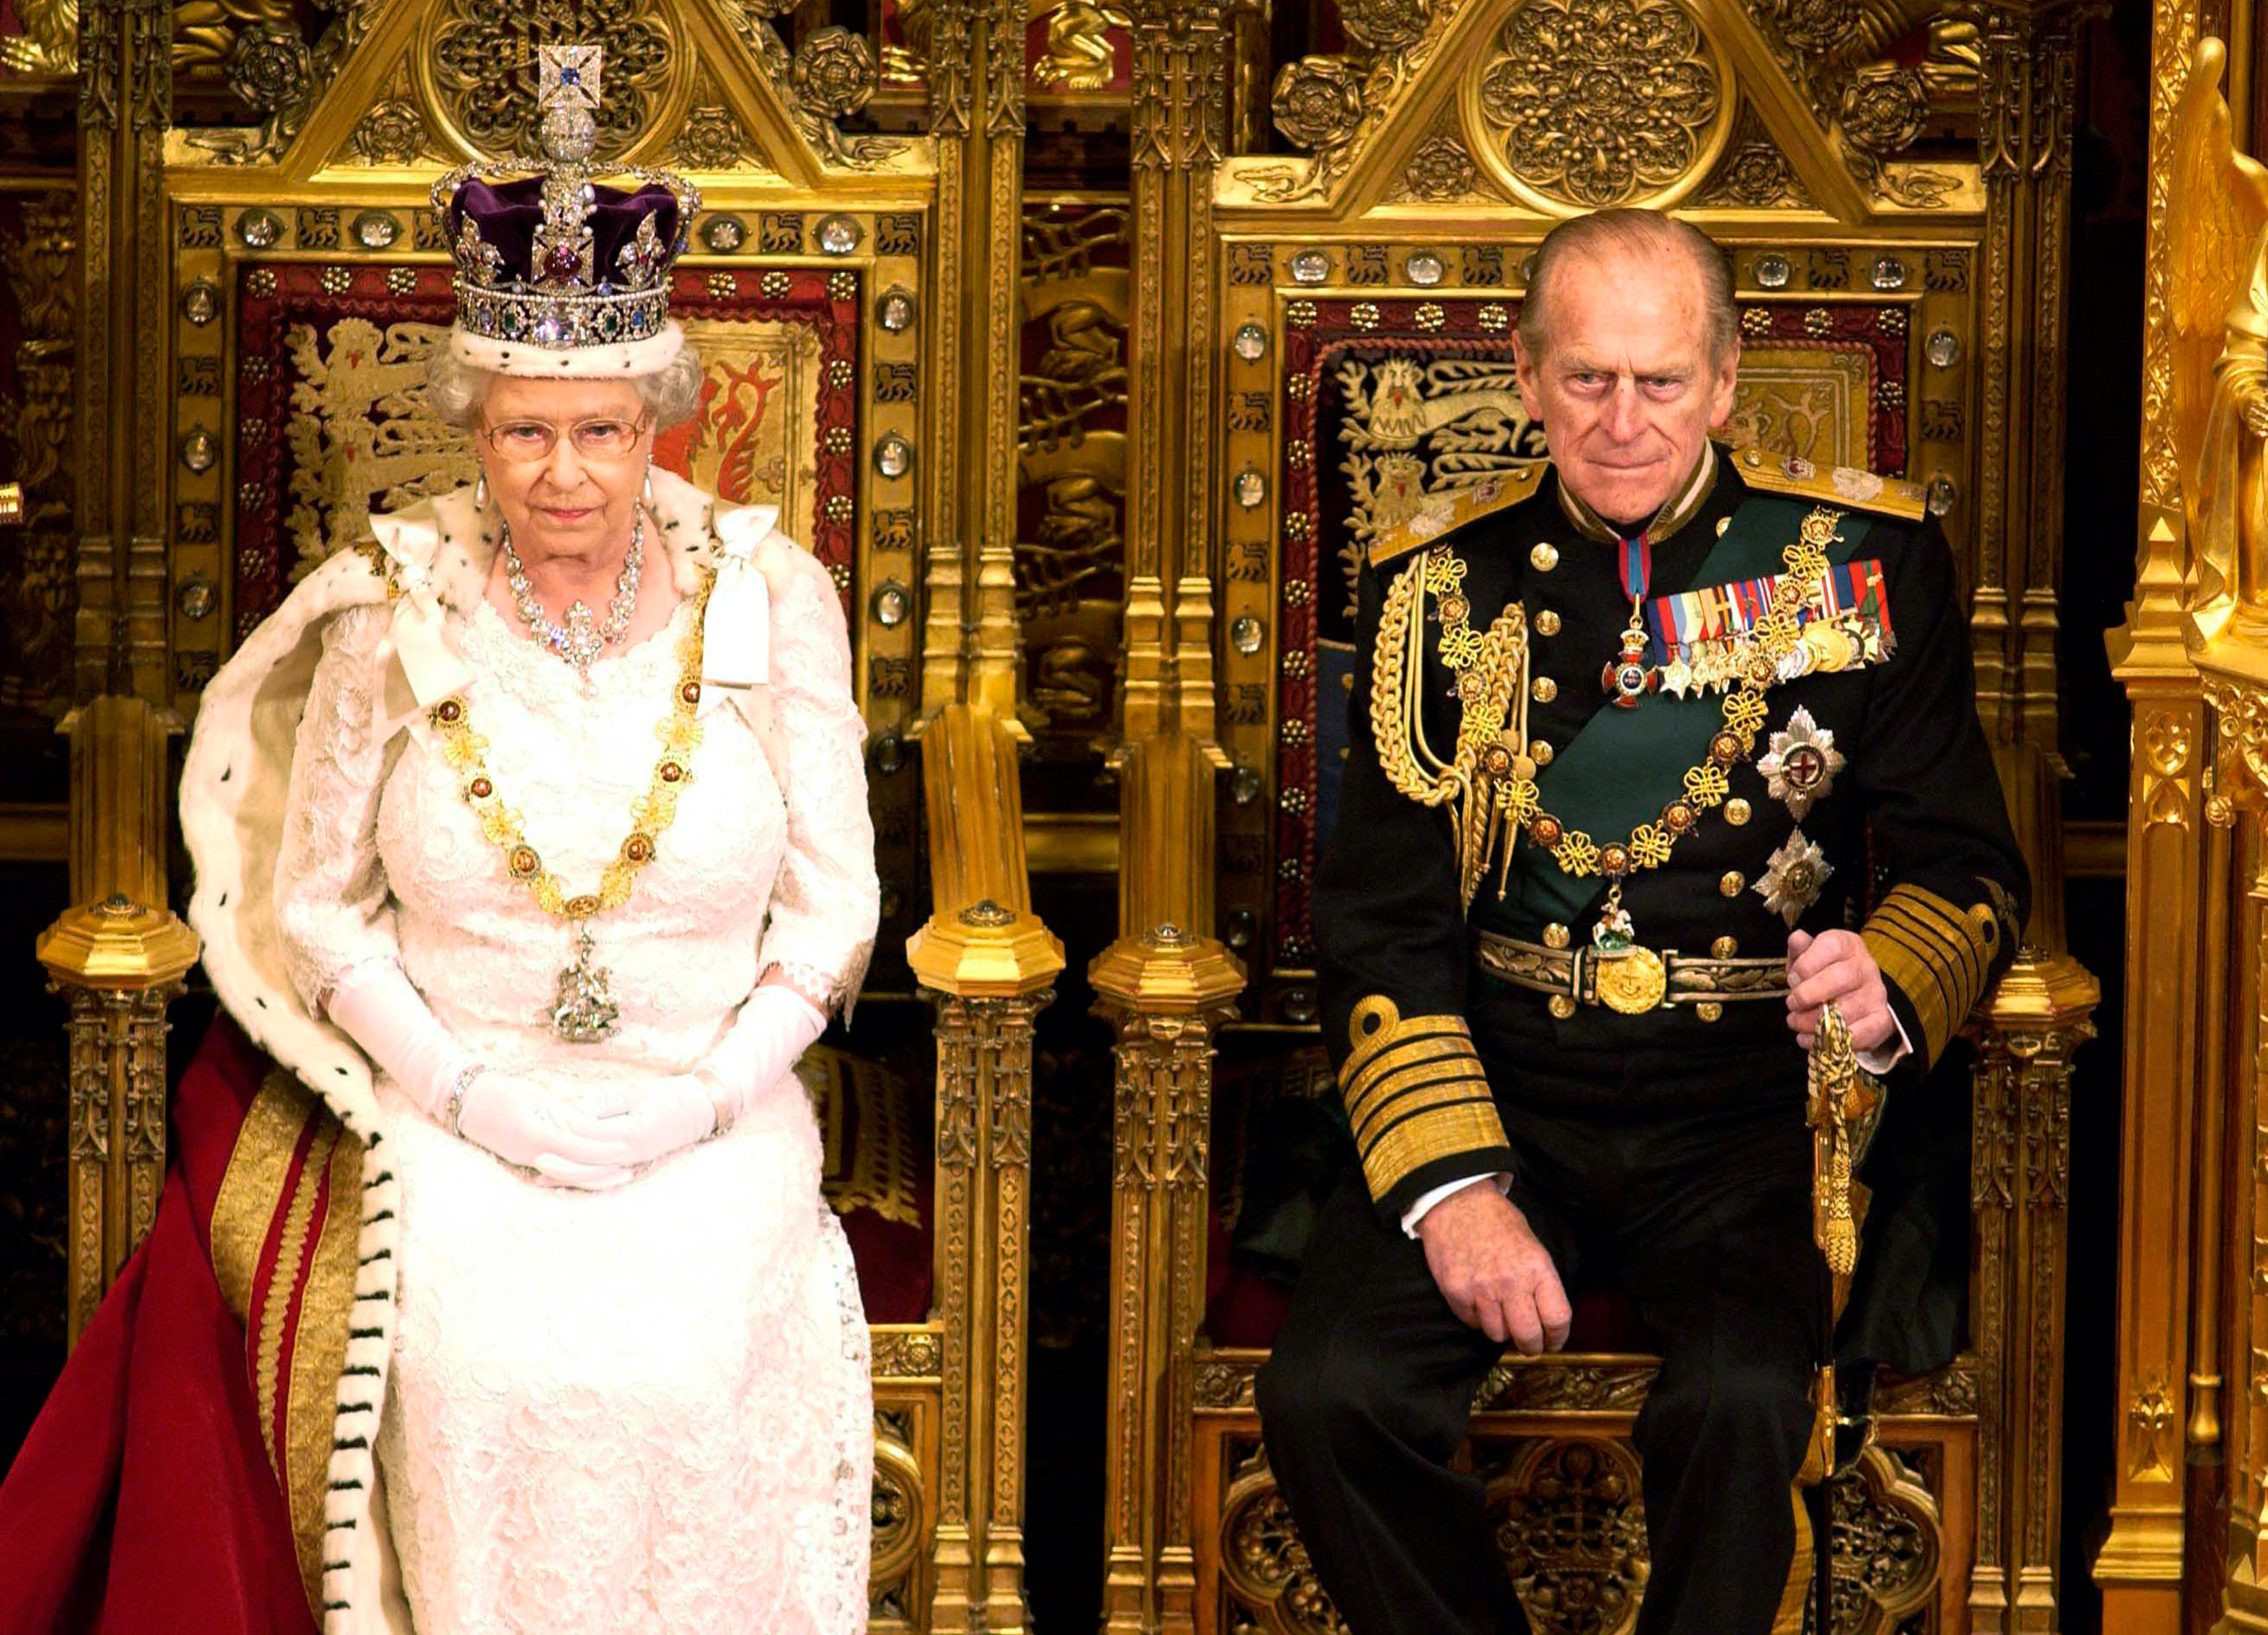 Queen Elizabeth II sits with Prince Philip in the House of Lords during the State Opening of Parliament on Nov. 26, 2003.